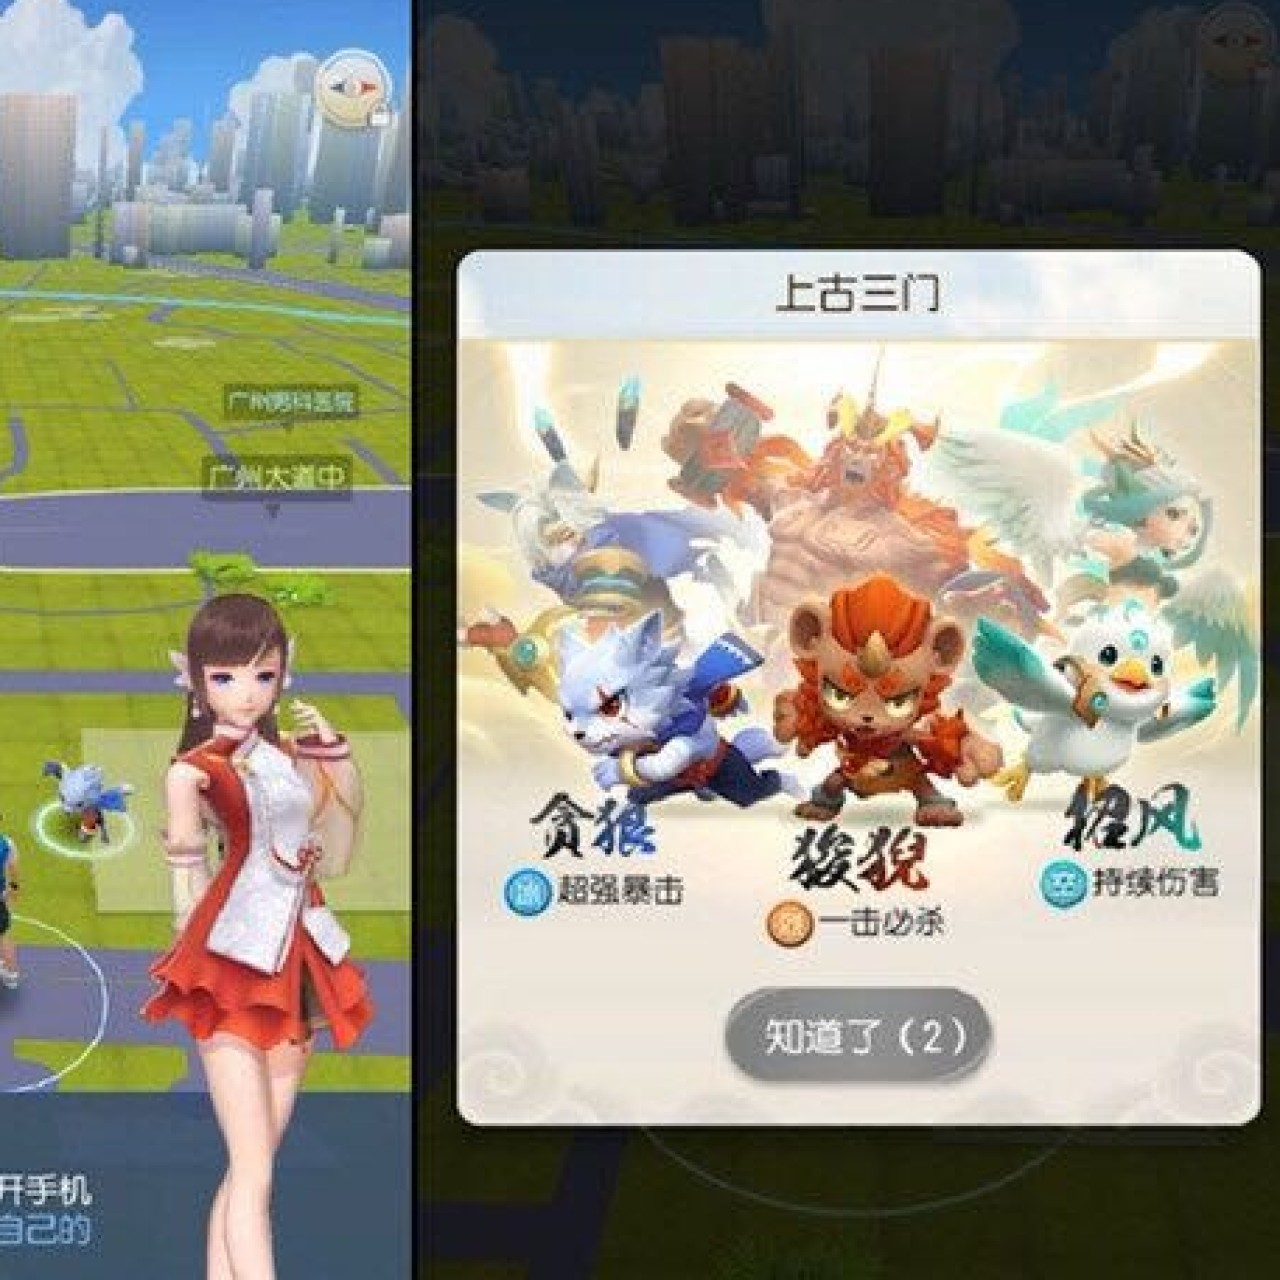 5G cloud gaming was the hot topic at ChinaJoy 2019  But is it just